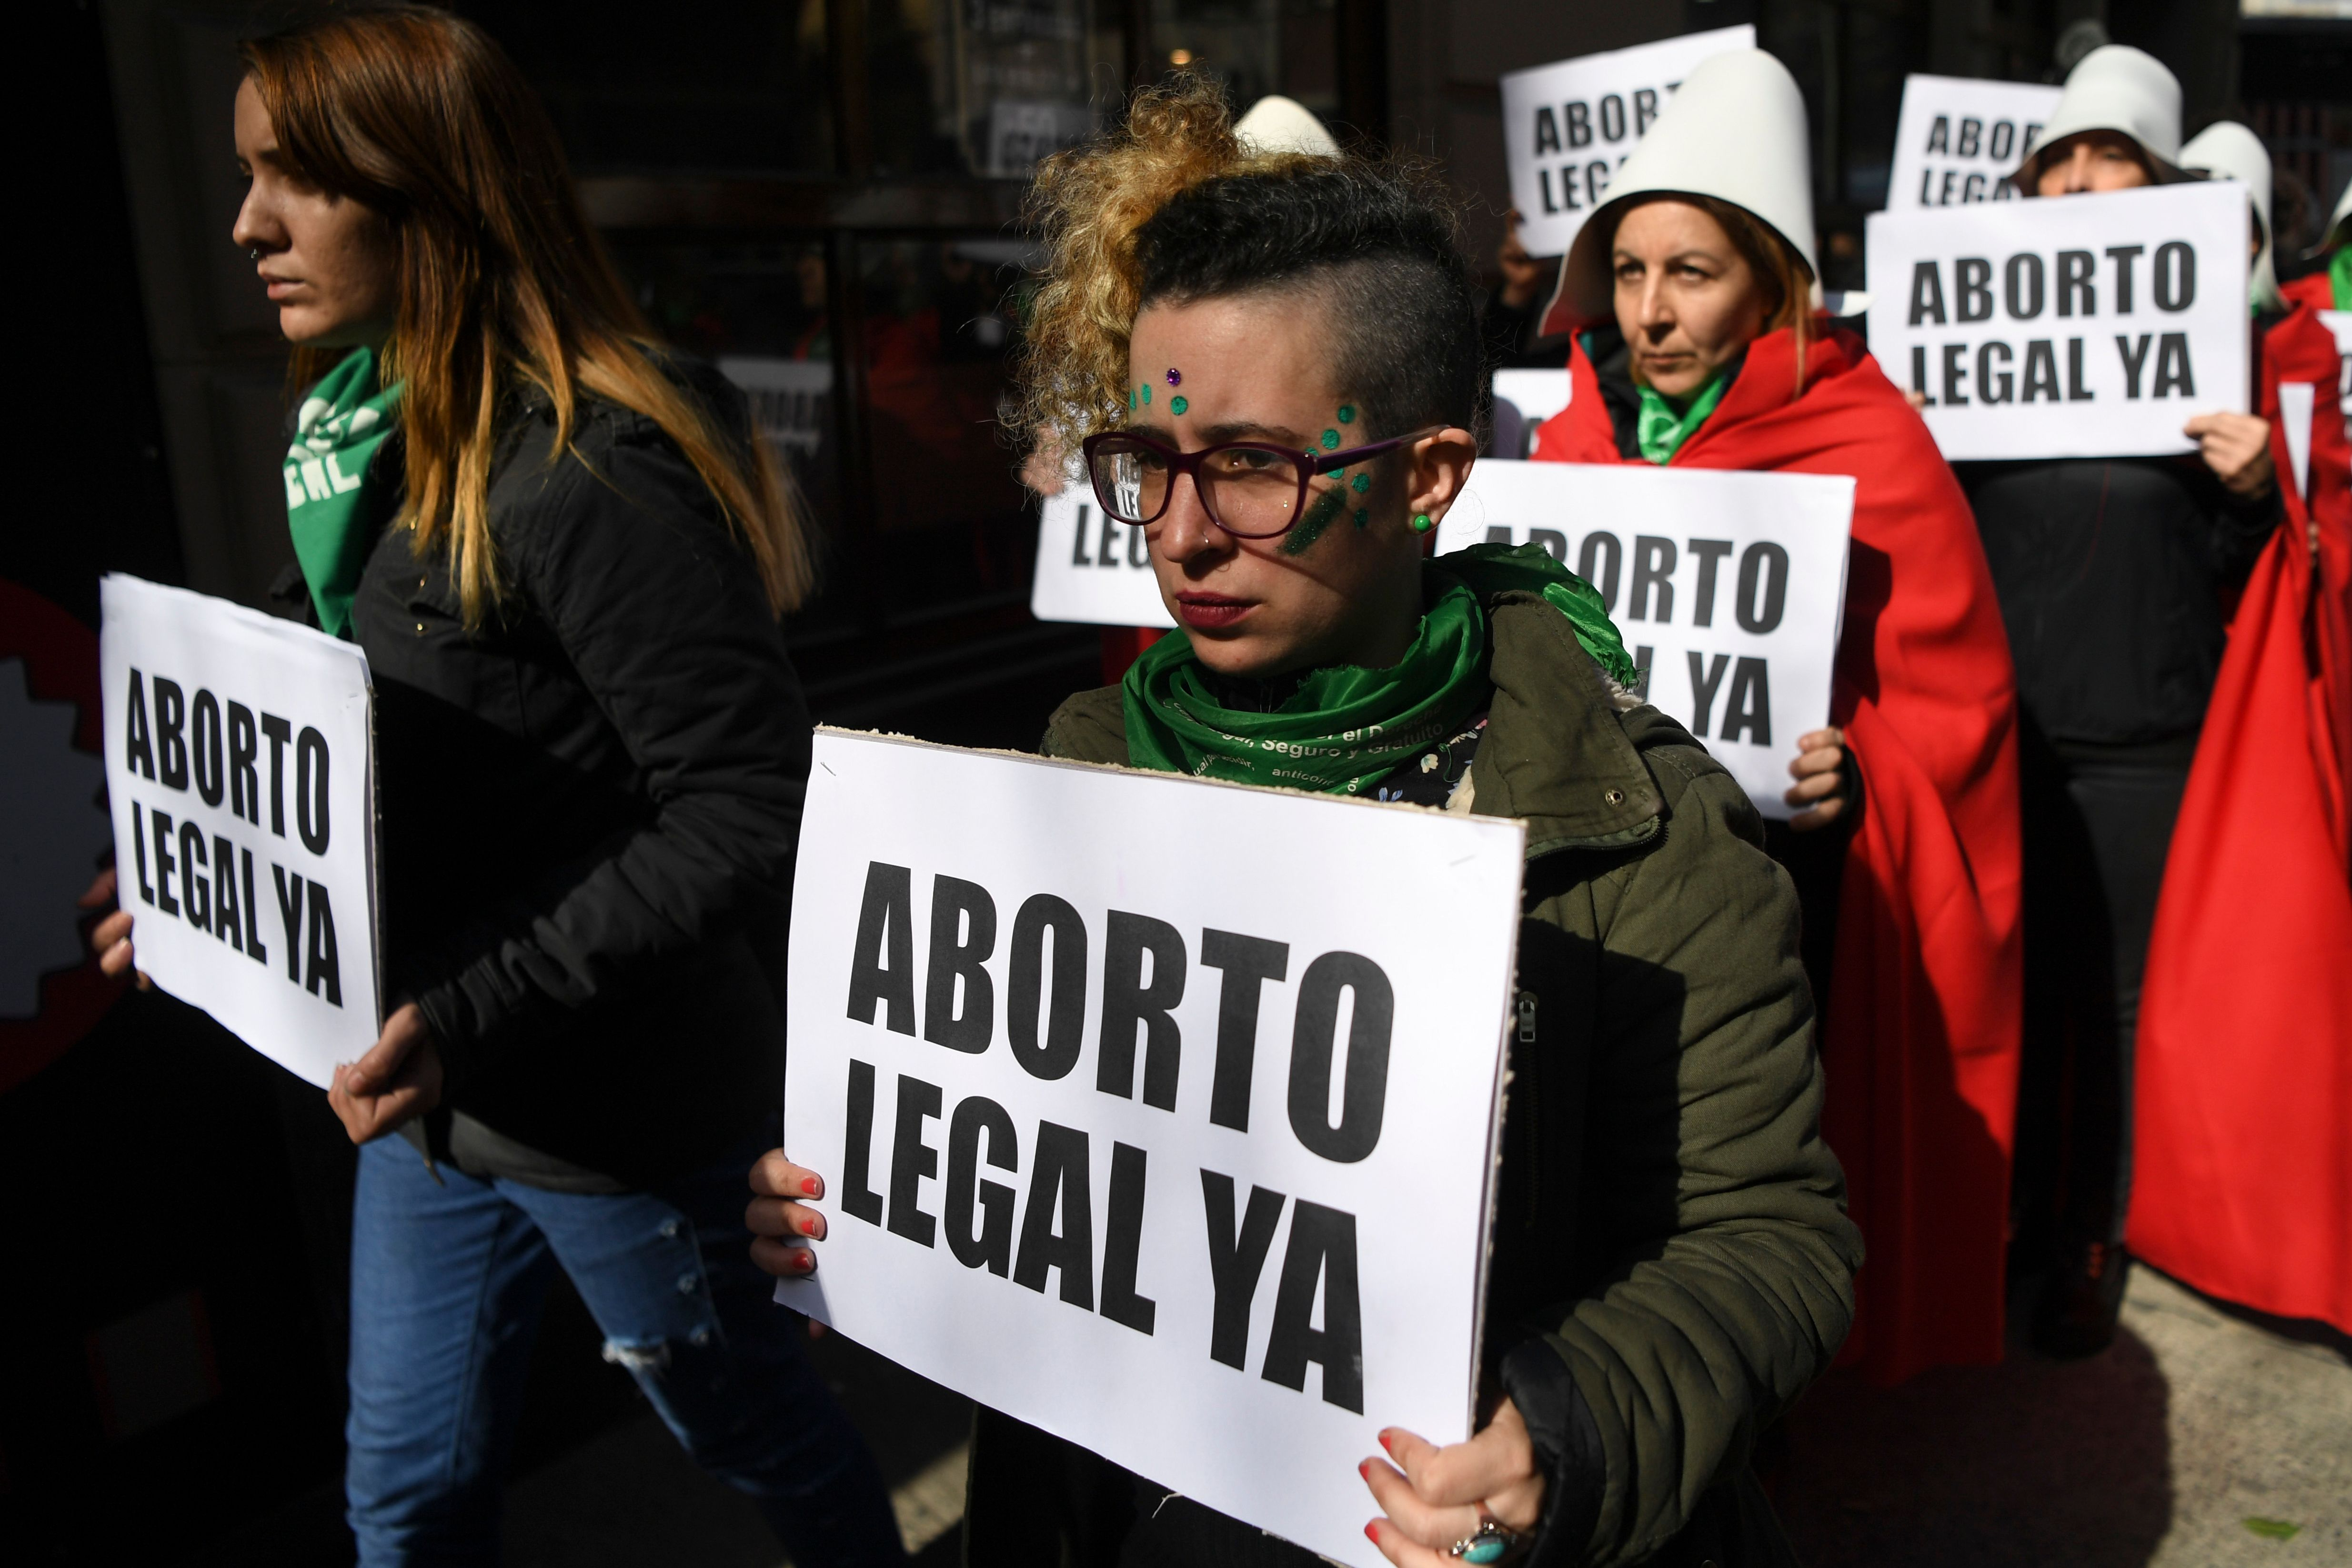 People in favour of the legalization of abortion demonstrate outside the National Congress in Buenos Aires on August 01, 2018.